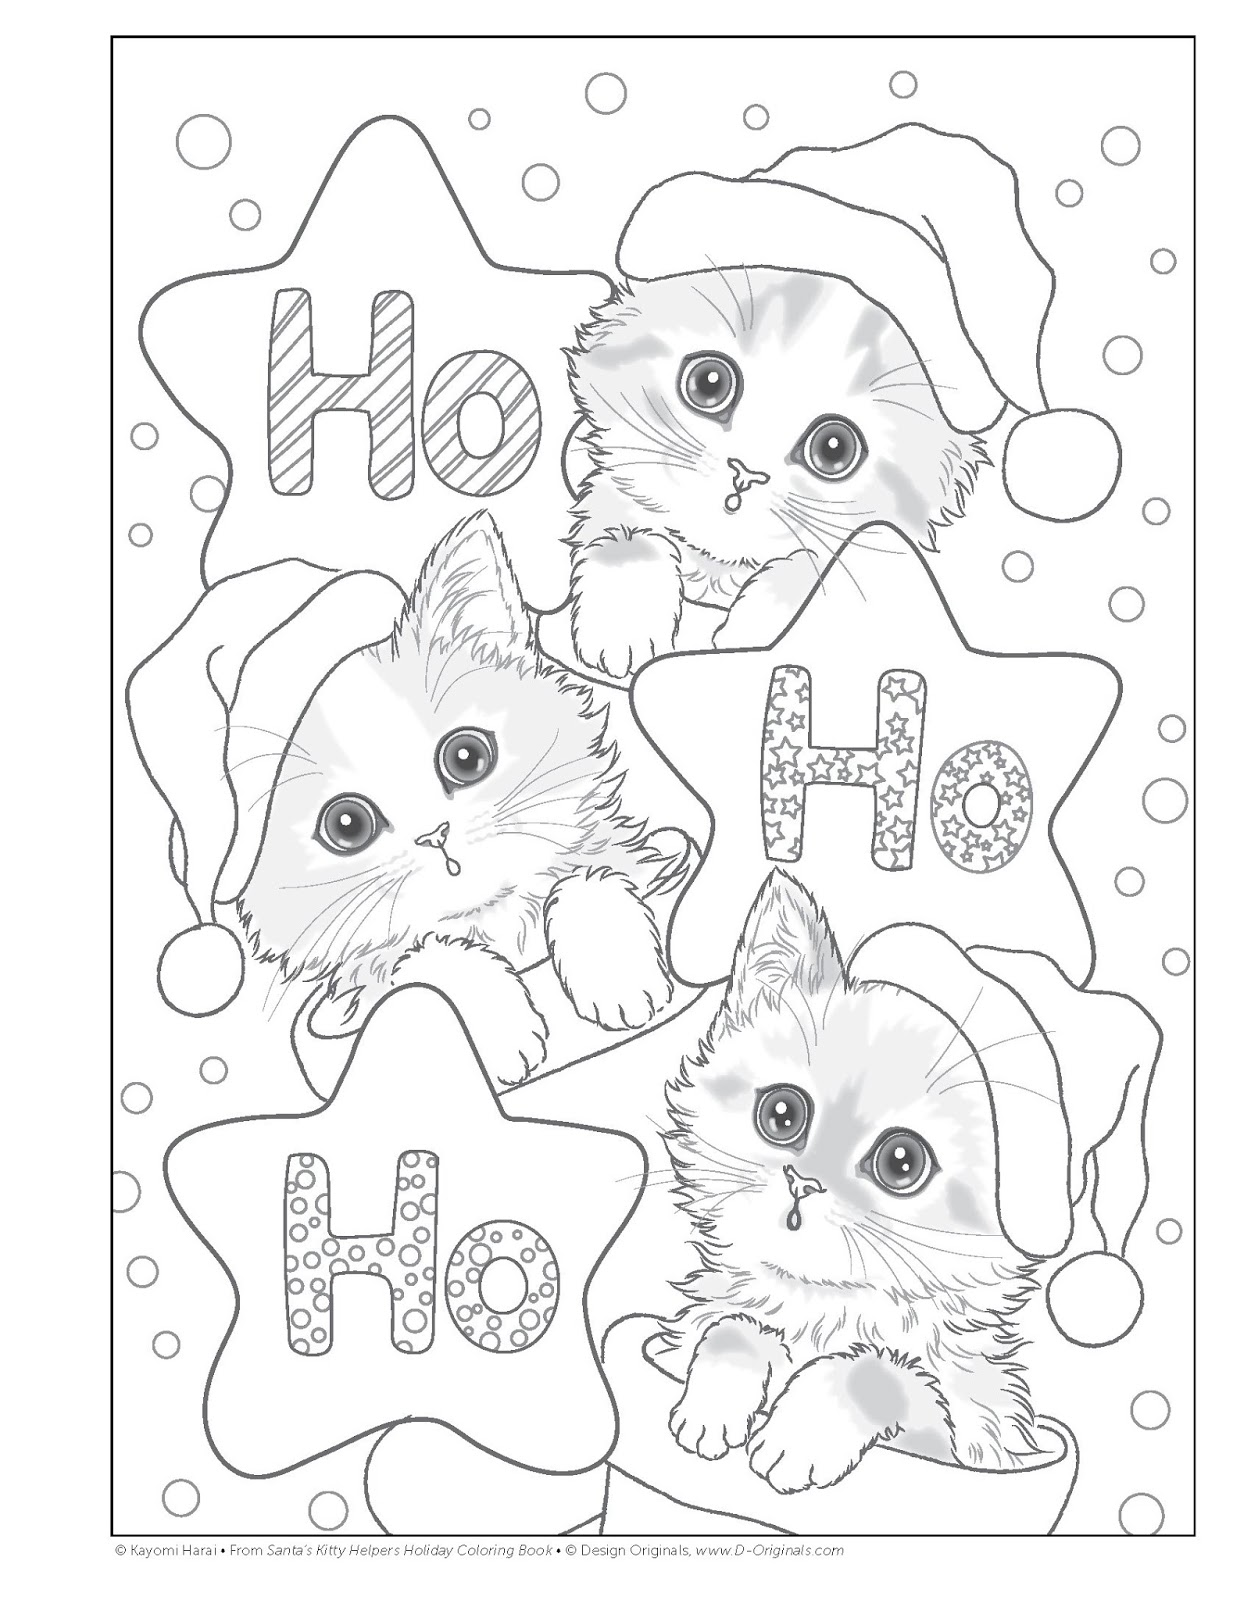 Santa On Vacation Coloring Pages With Green And Glassie S Kitty Helpers Holiday Book